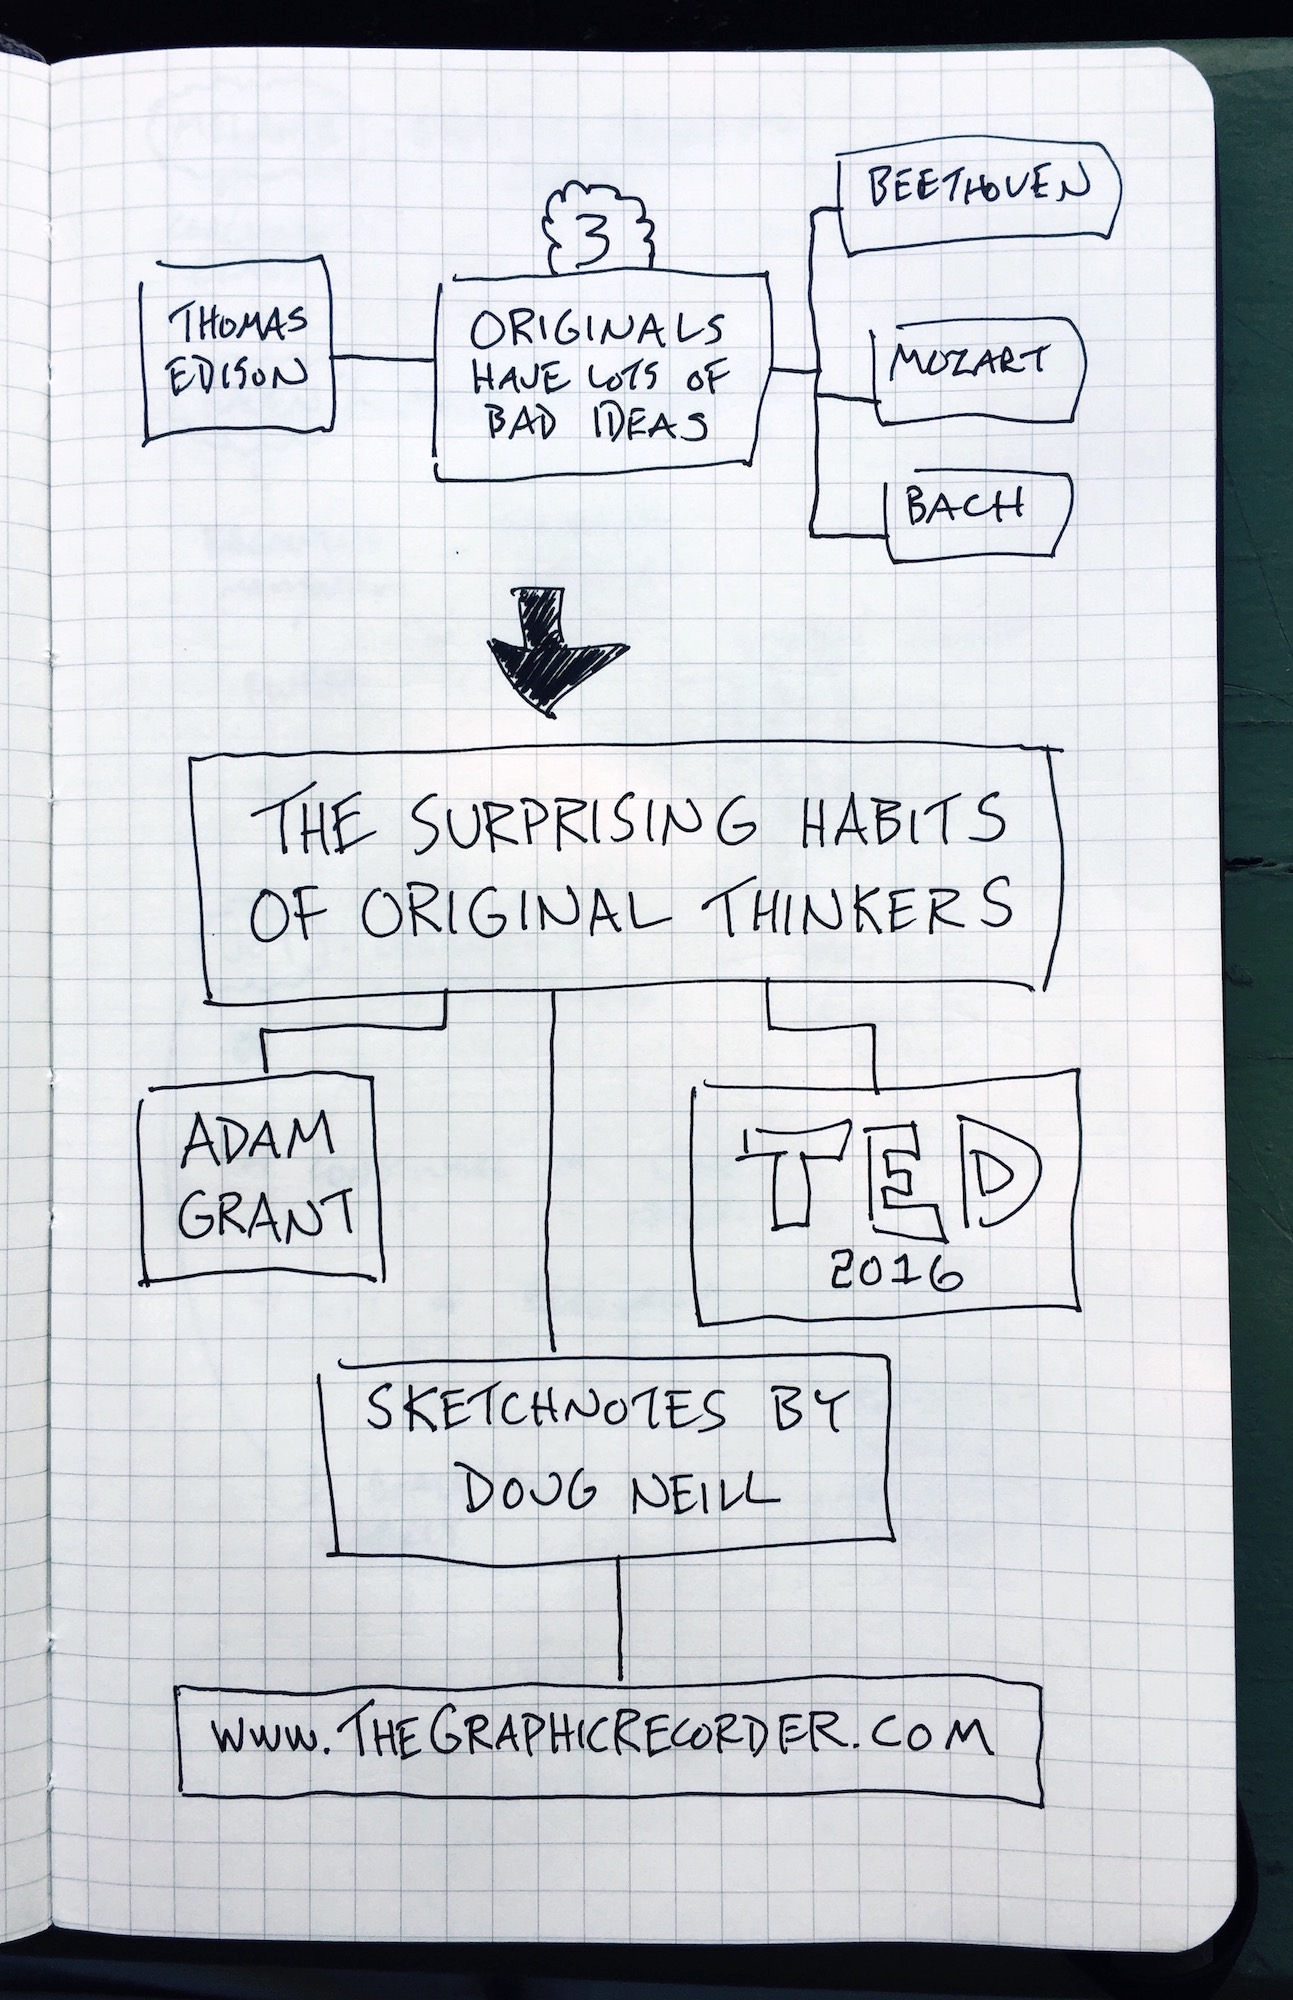 The Surprising Habits of Original Thinkers (2) - Adam Grant TED Talk - Doug Neill Sketchnotes